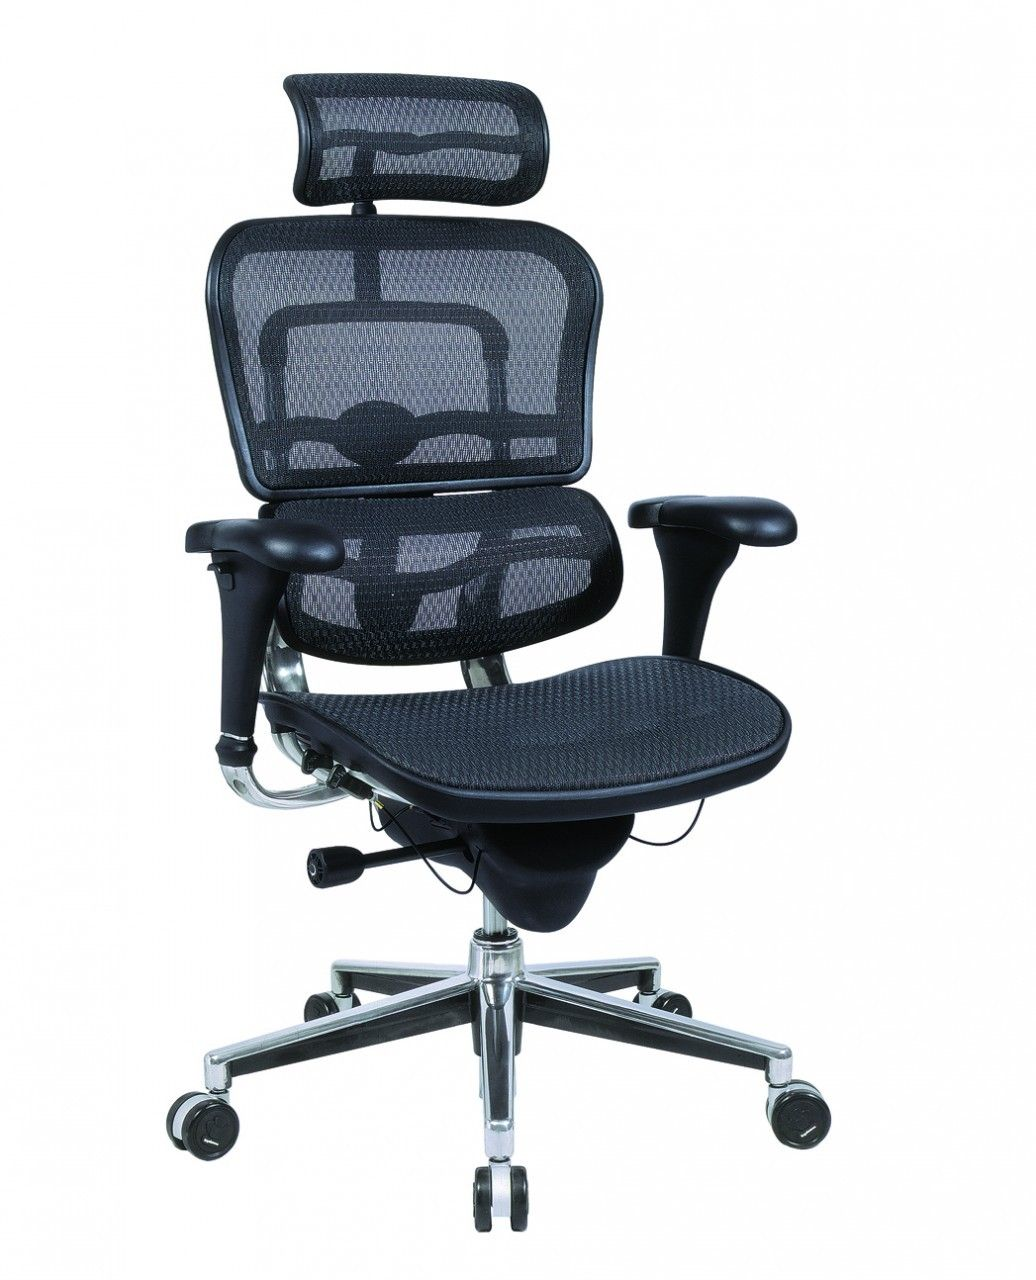 edge seat mesh garden bellport product home frame white modway havenside chair free today office shipping overstock